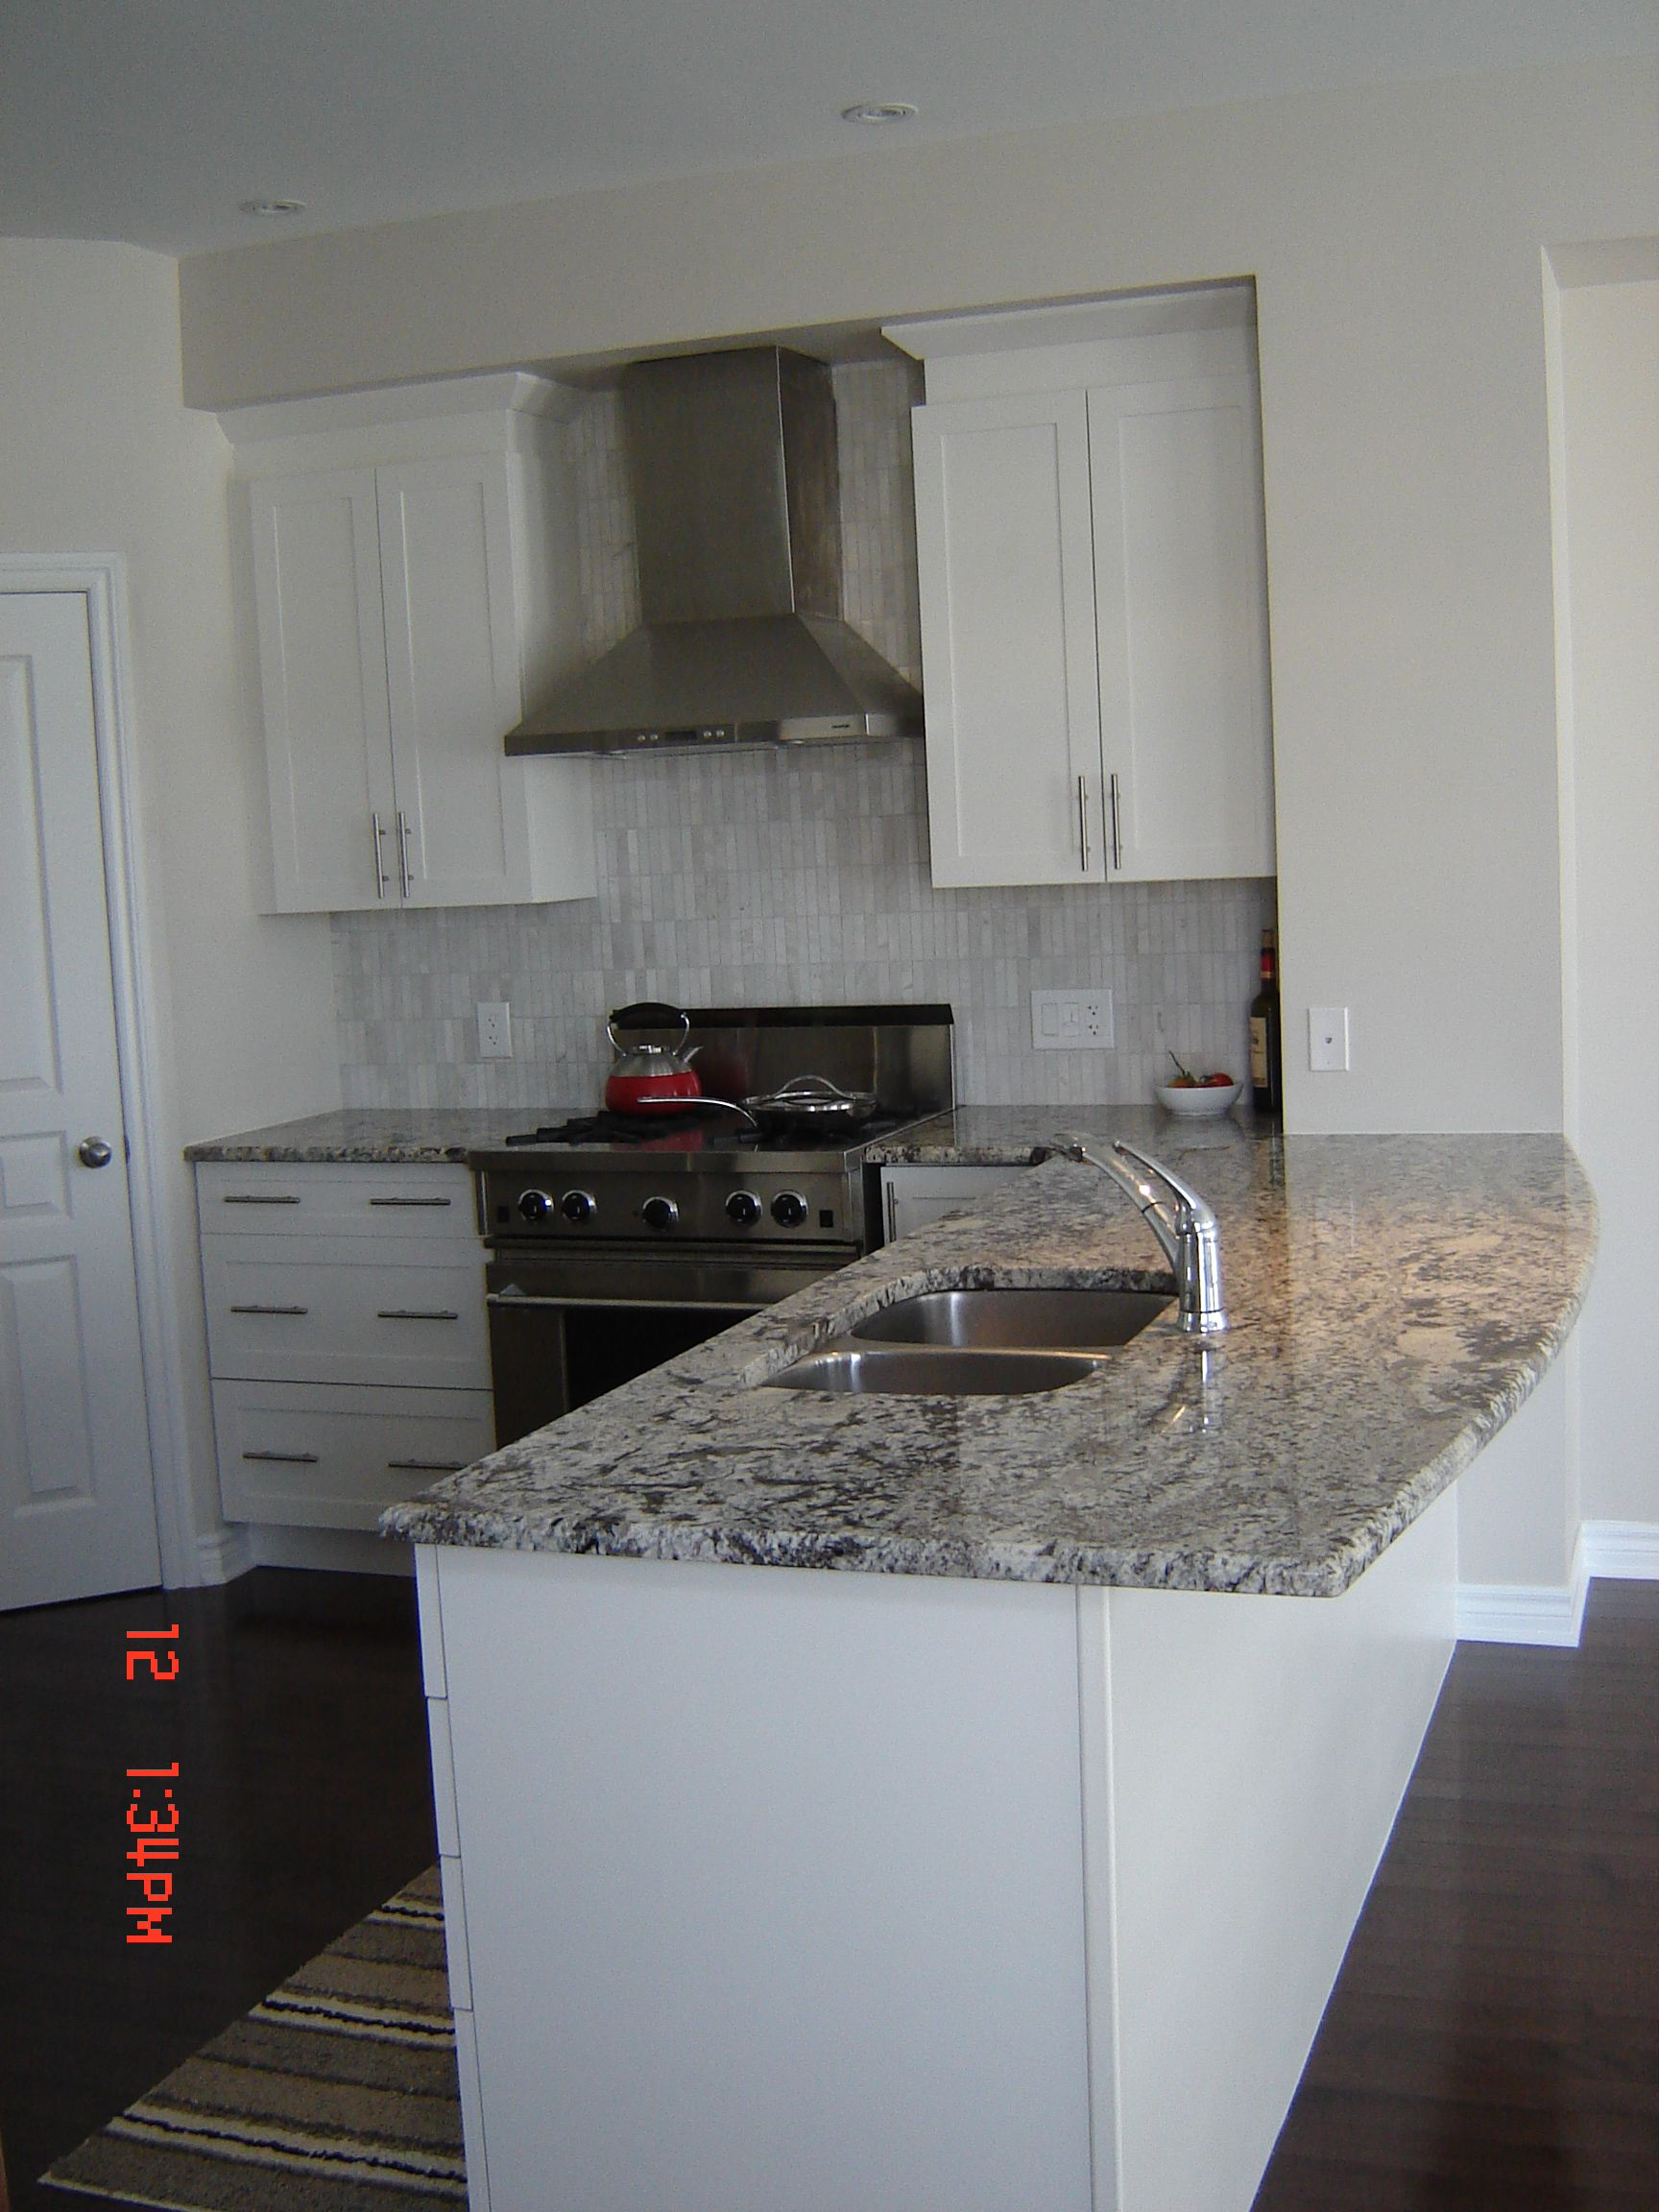 Bianco Antico Granite Countertops White Cabinets: white kitchen cabinets with granite countertops photos